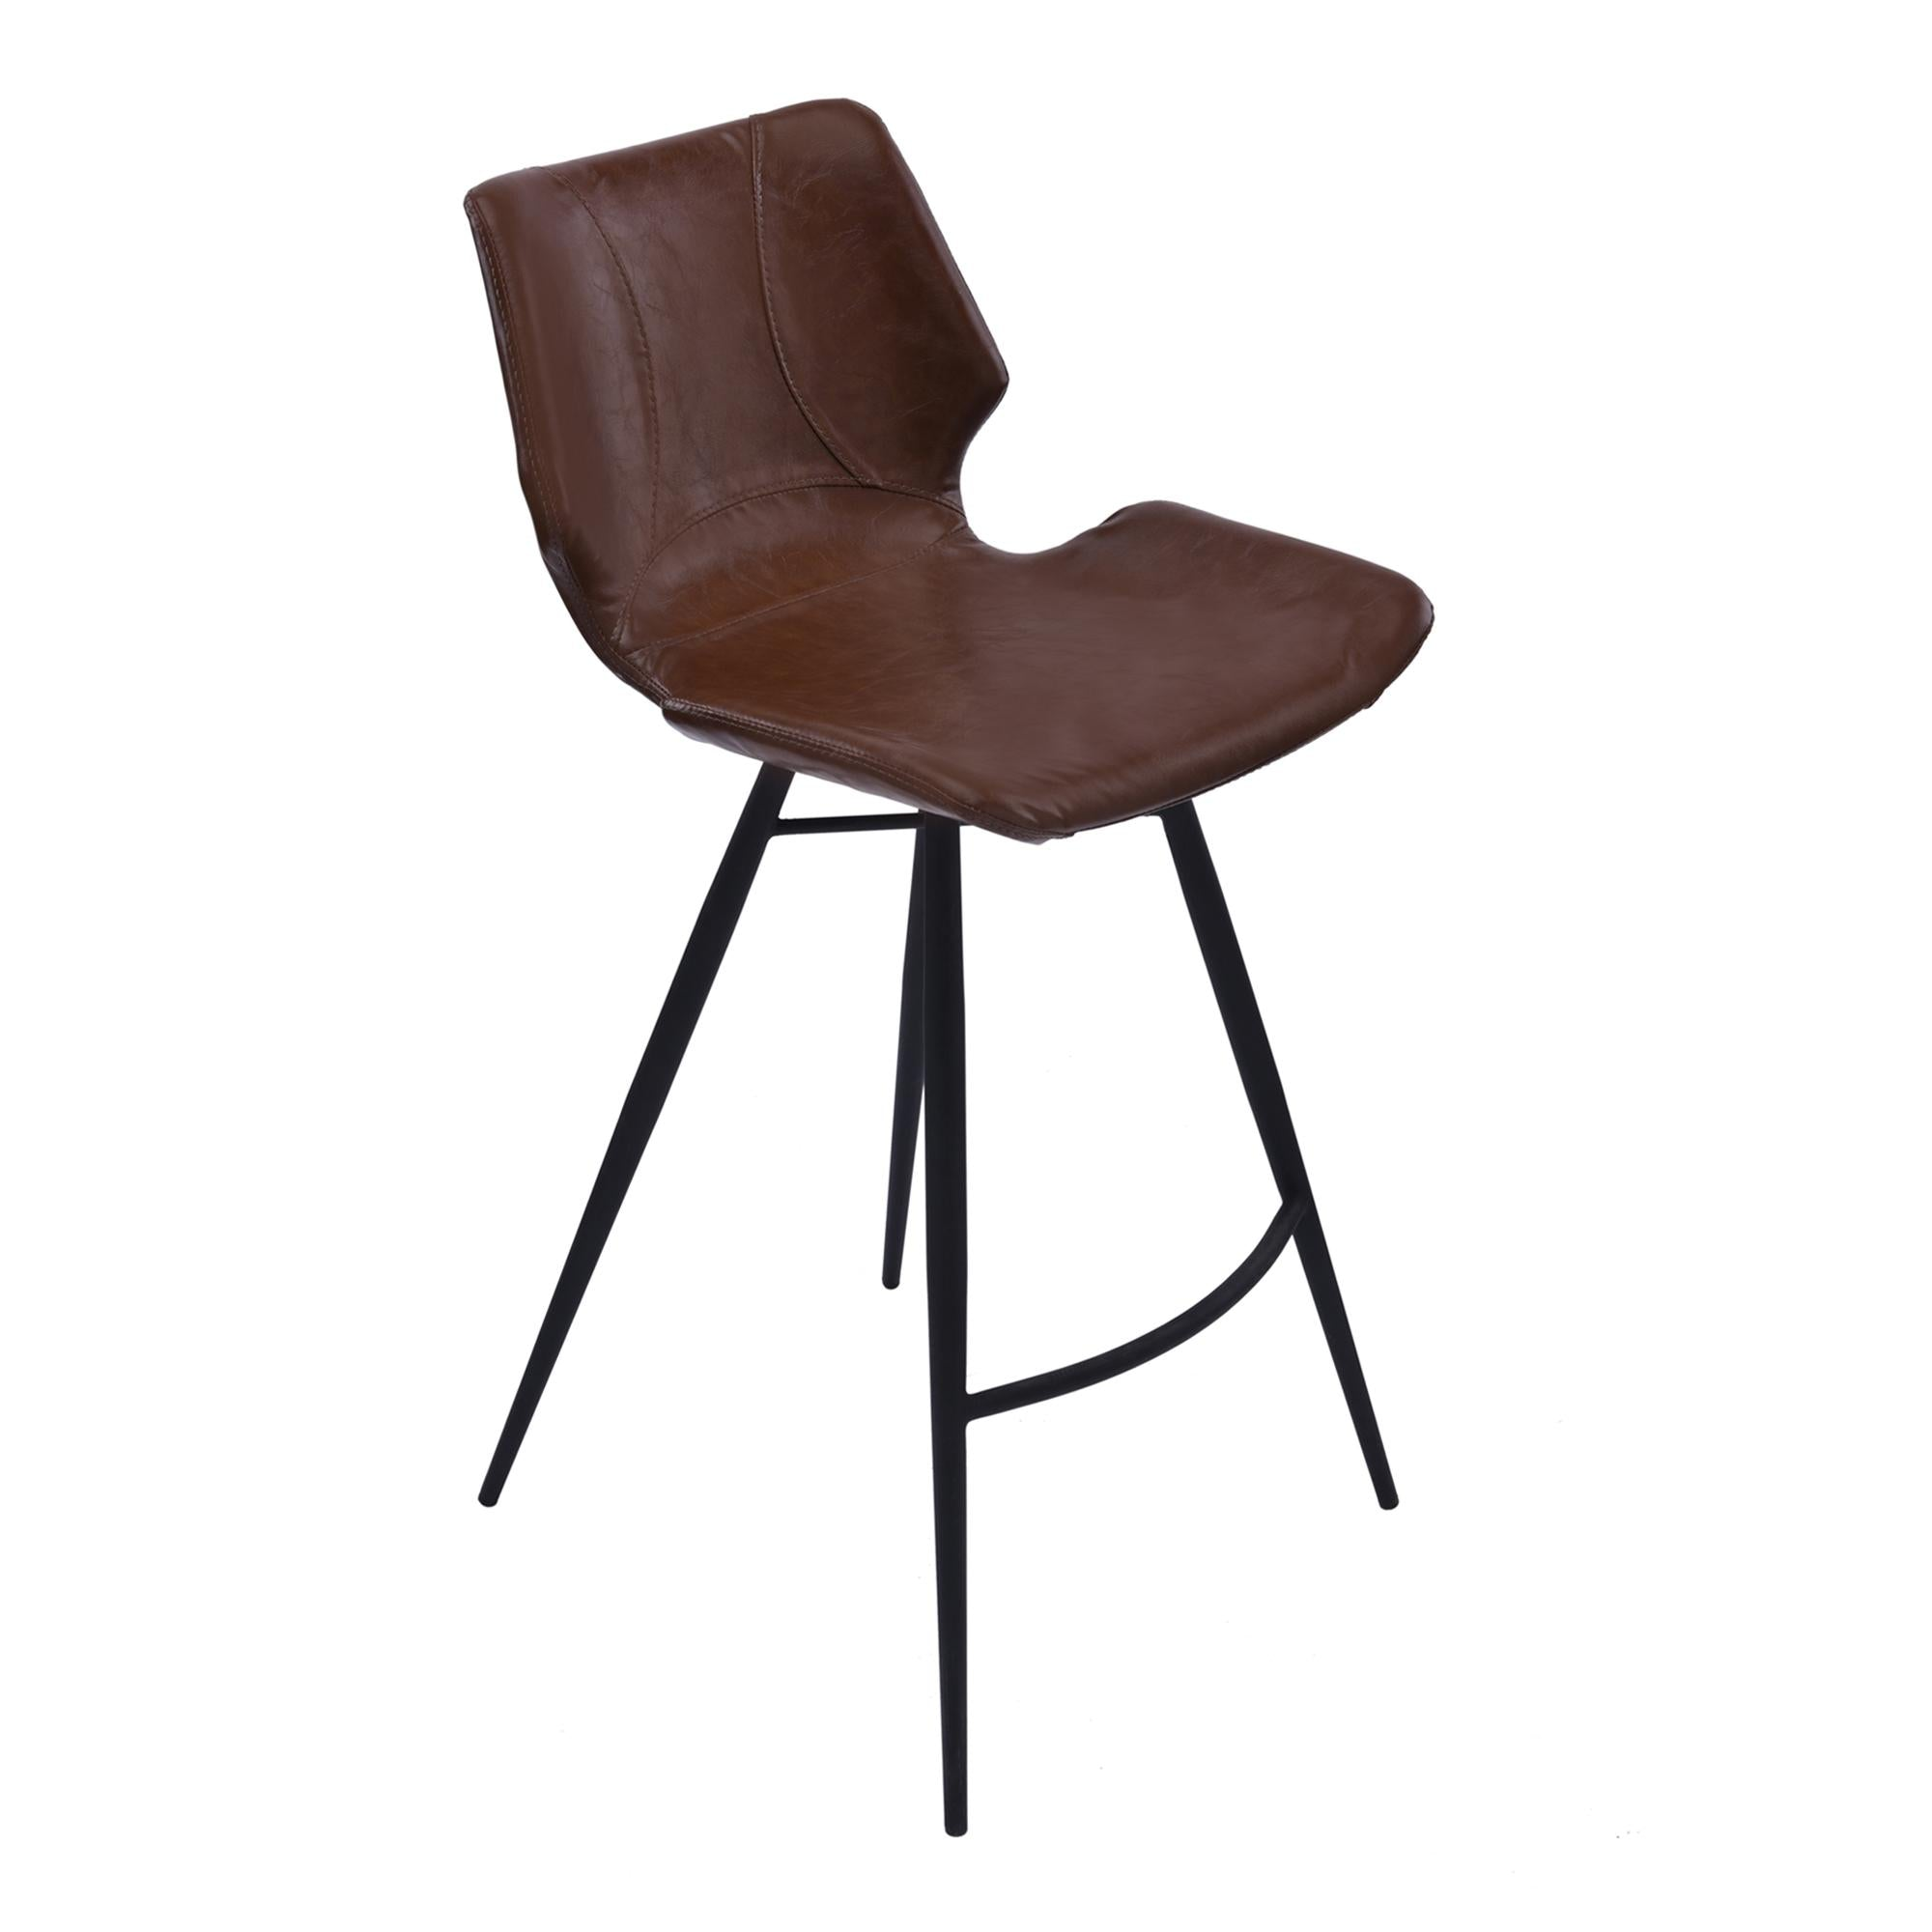 Armen Living Zurich 30' Bar Height Metal Barstool in Vintage Coffee Pu and Black Metal Finish